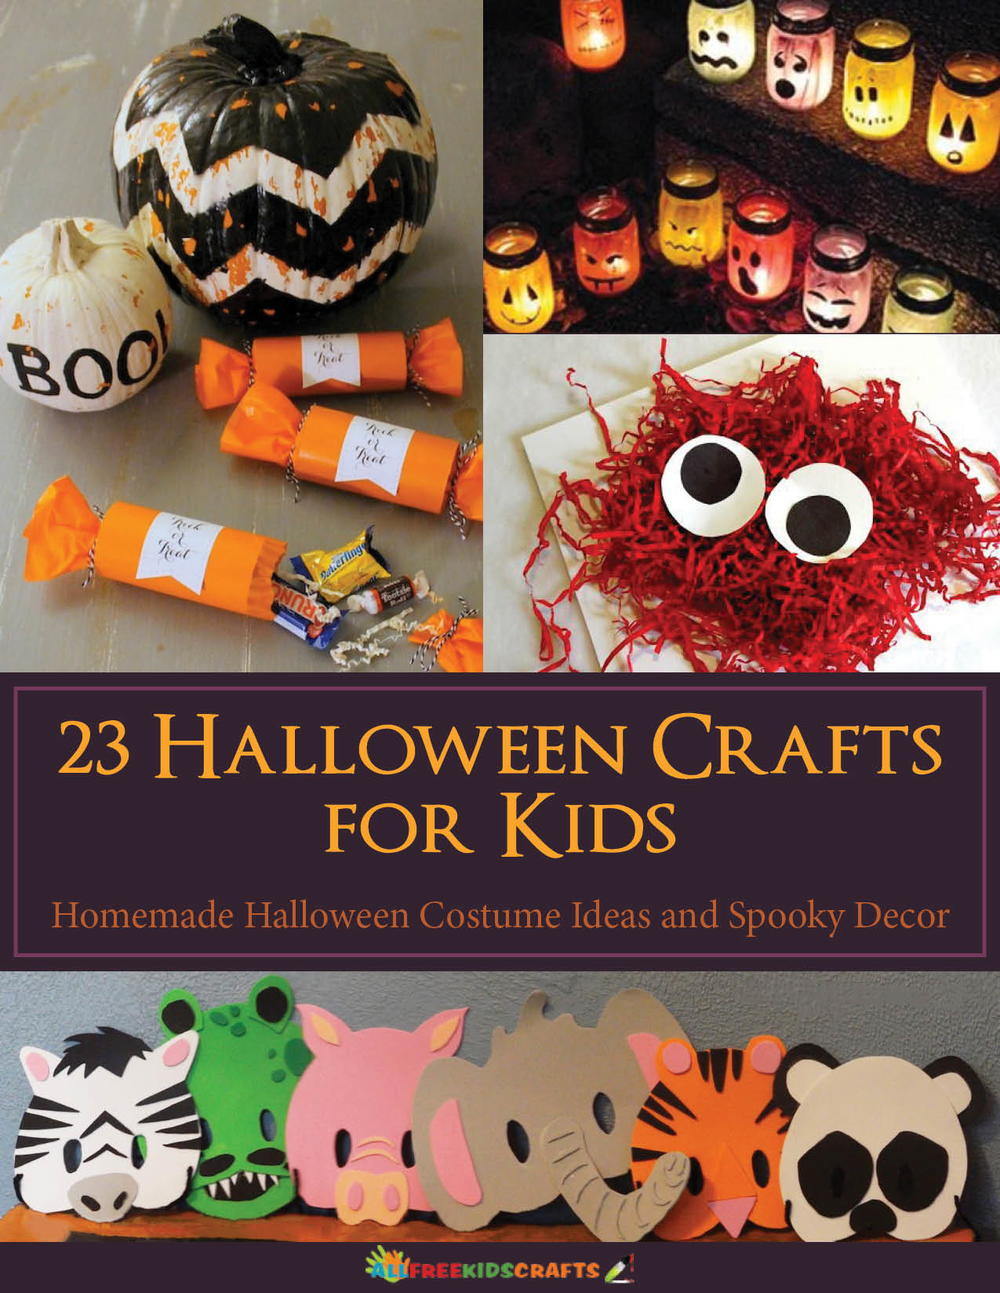 23 halloween crafts for kids homemade halloween costume ideas and spooky decor free ebook allfreekidscraftscom - Preschool Halloween Crafts Ideas